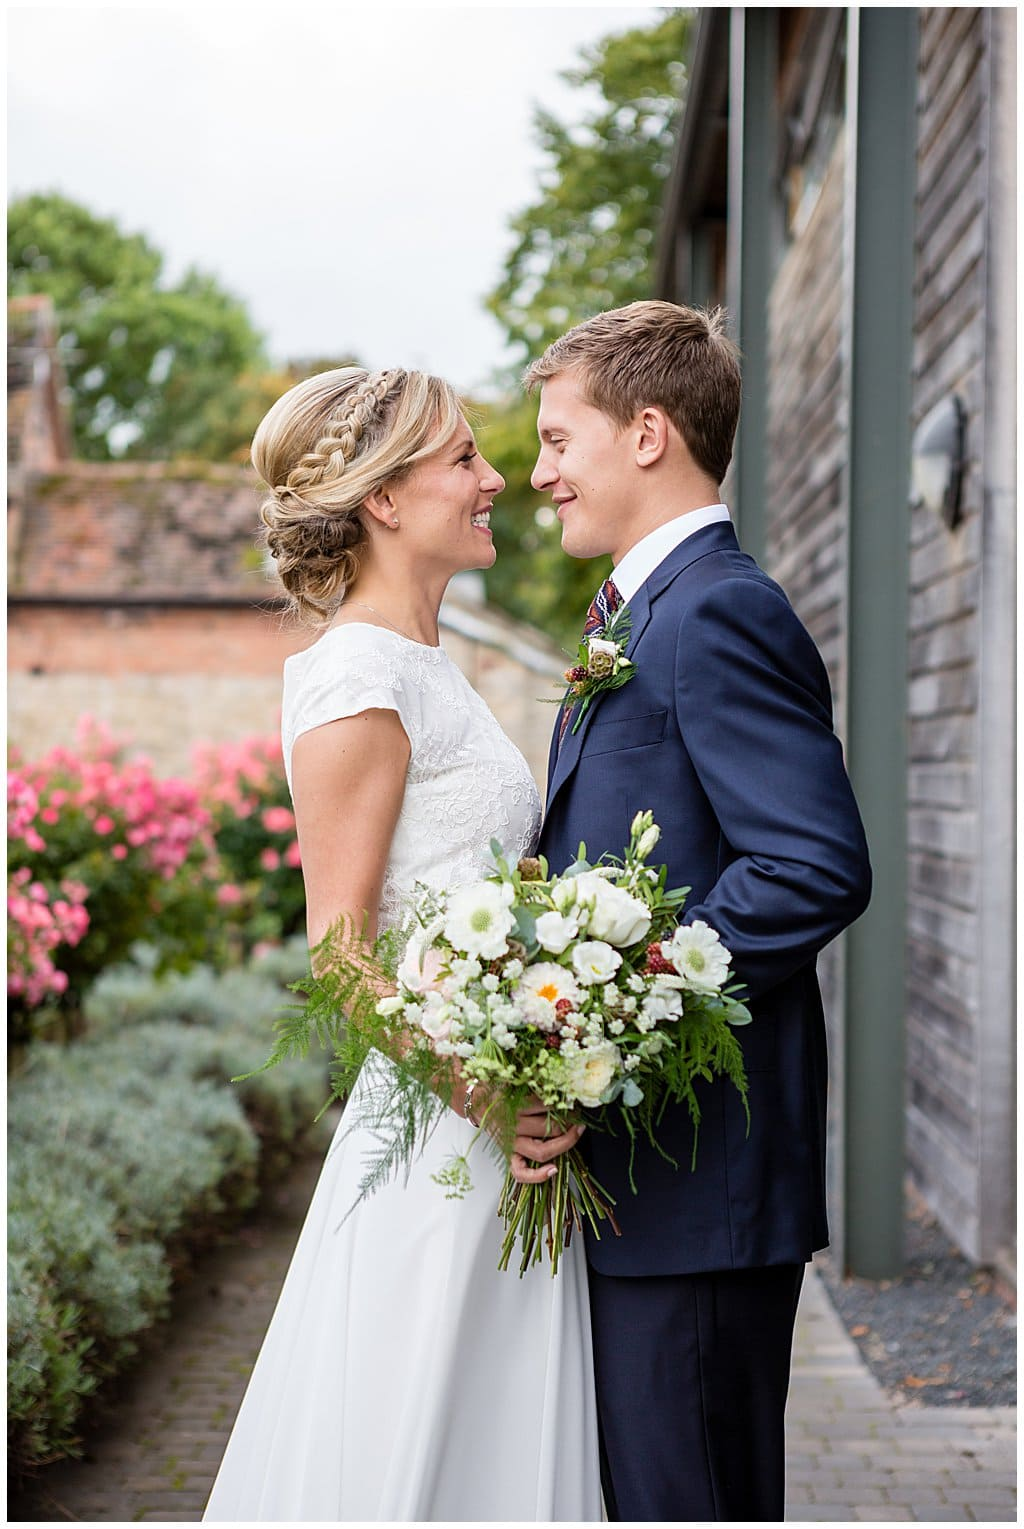 Newly married couple pose with Brides flowers outside their country barn venue